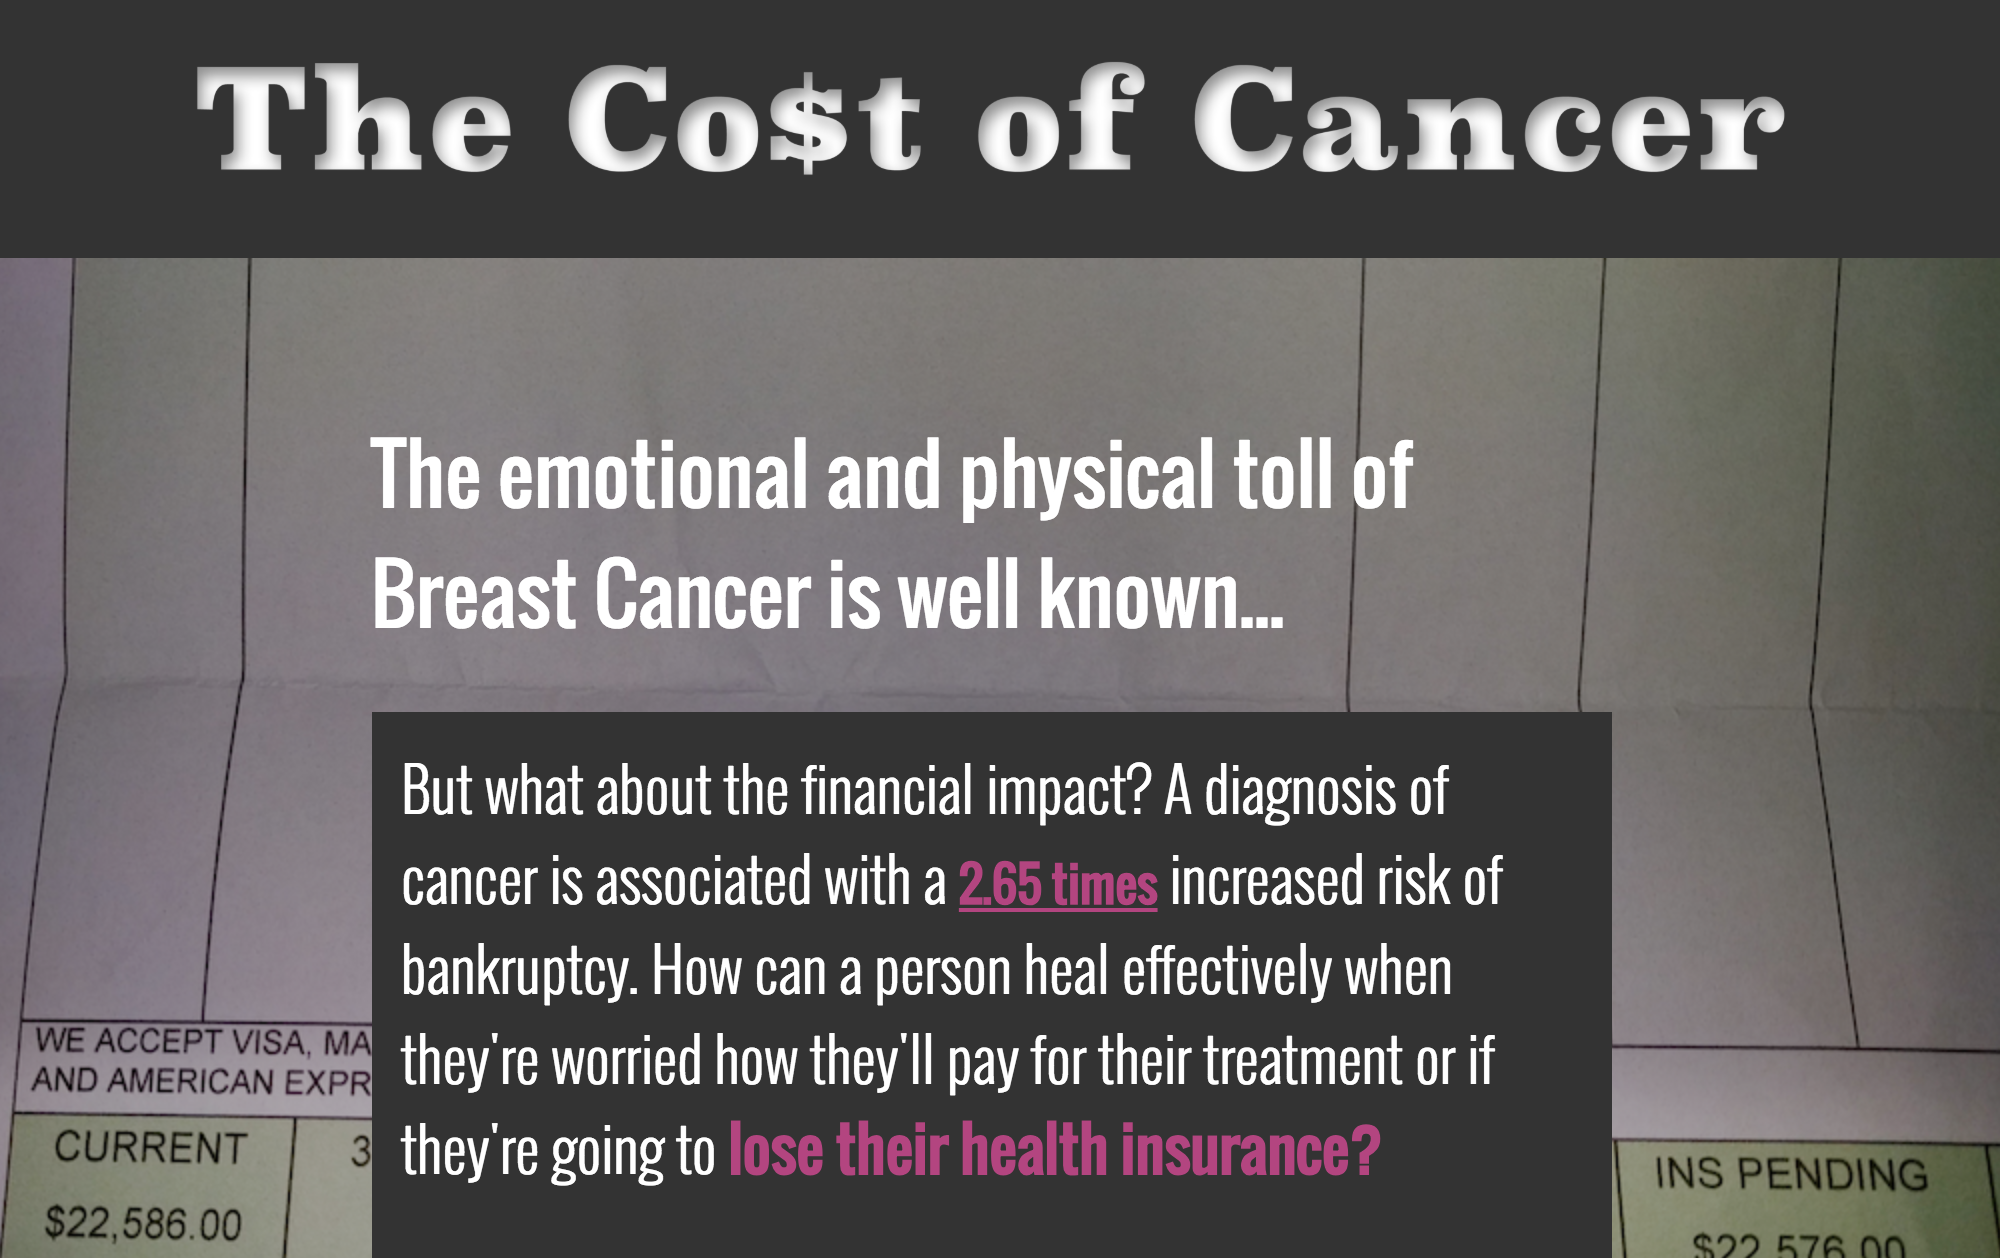 Costs of Cancer thumbnail